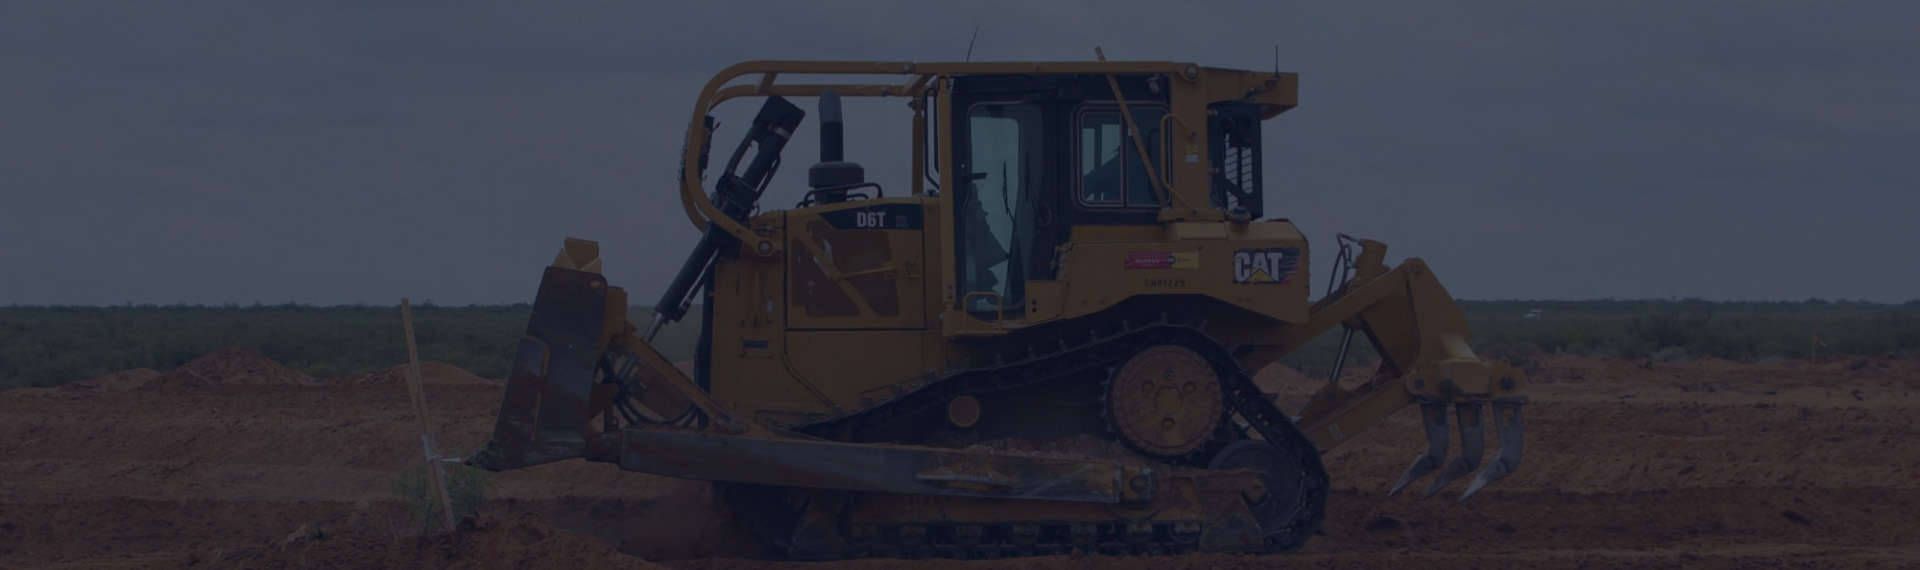 Piece of yellow Cat branded heavy machinery digging in the dirt.